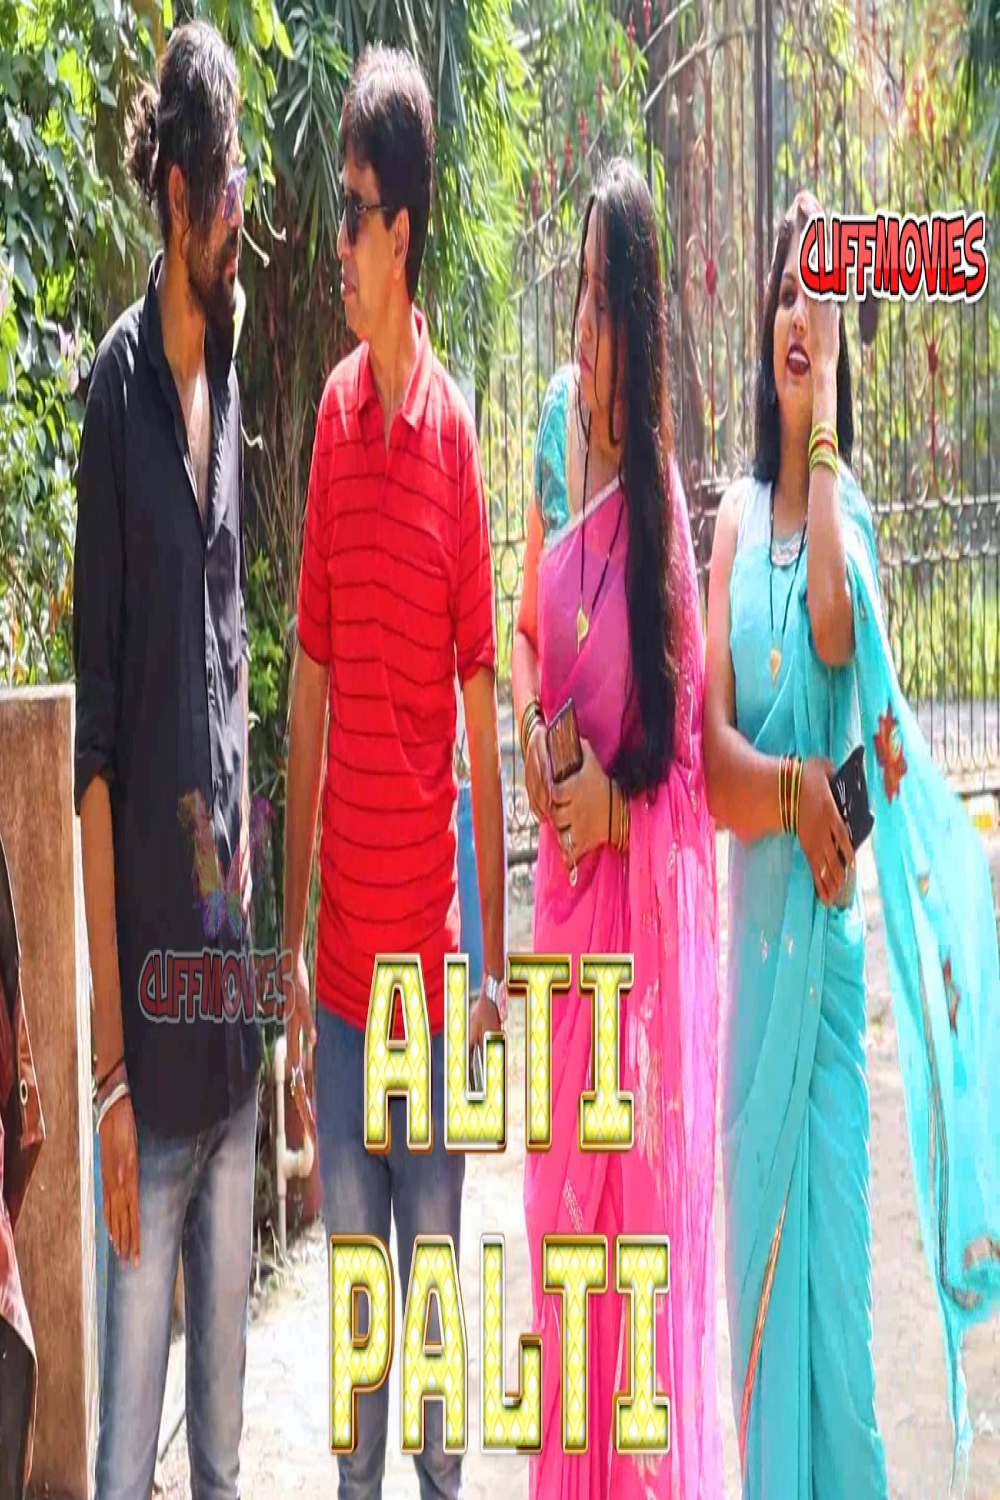 18+ Alti Palti (2020) Hindi S01 EP01 WEB-DL 720p 120MB Download